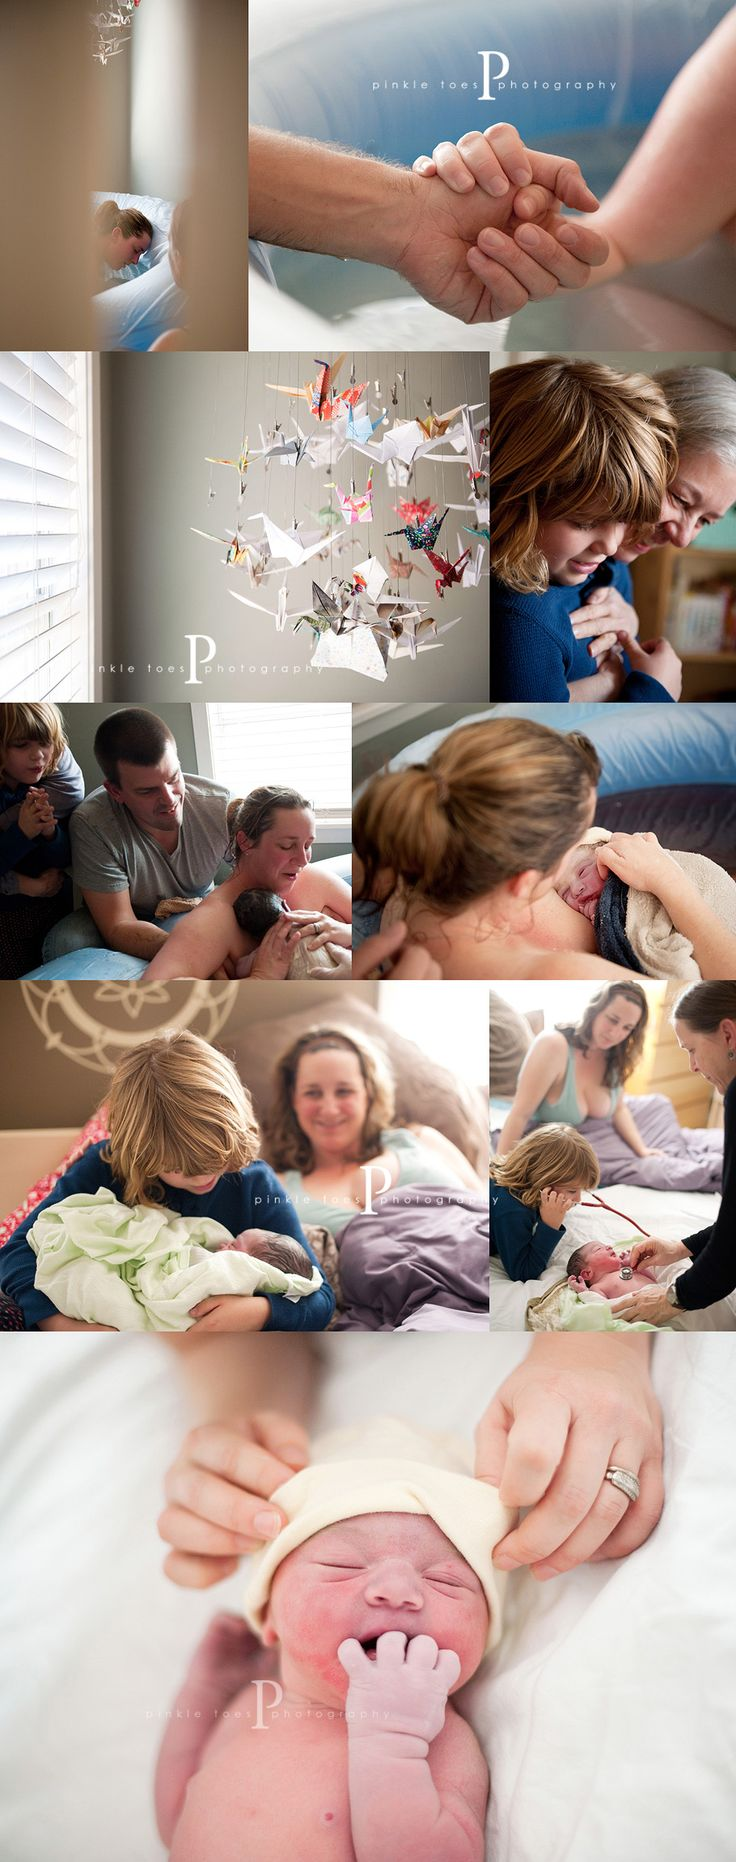 beautiful!: Photo Collage, Homebirth Pictures, Births Stories, Homebirth Photos Births Lov, Homebirth Photography, Photo Idea, Beauty Births, Births Photography, Births Pictures